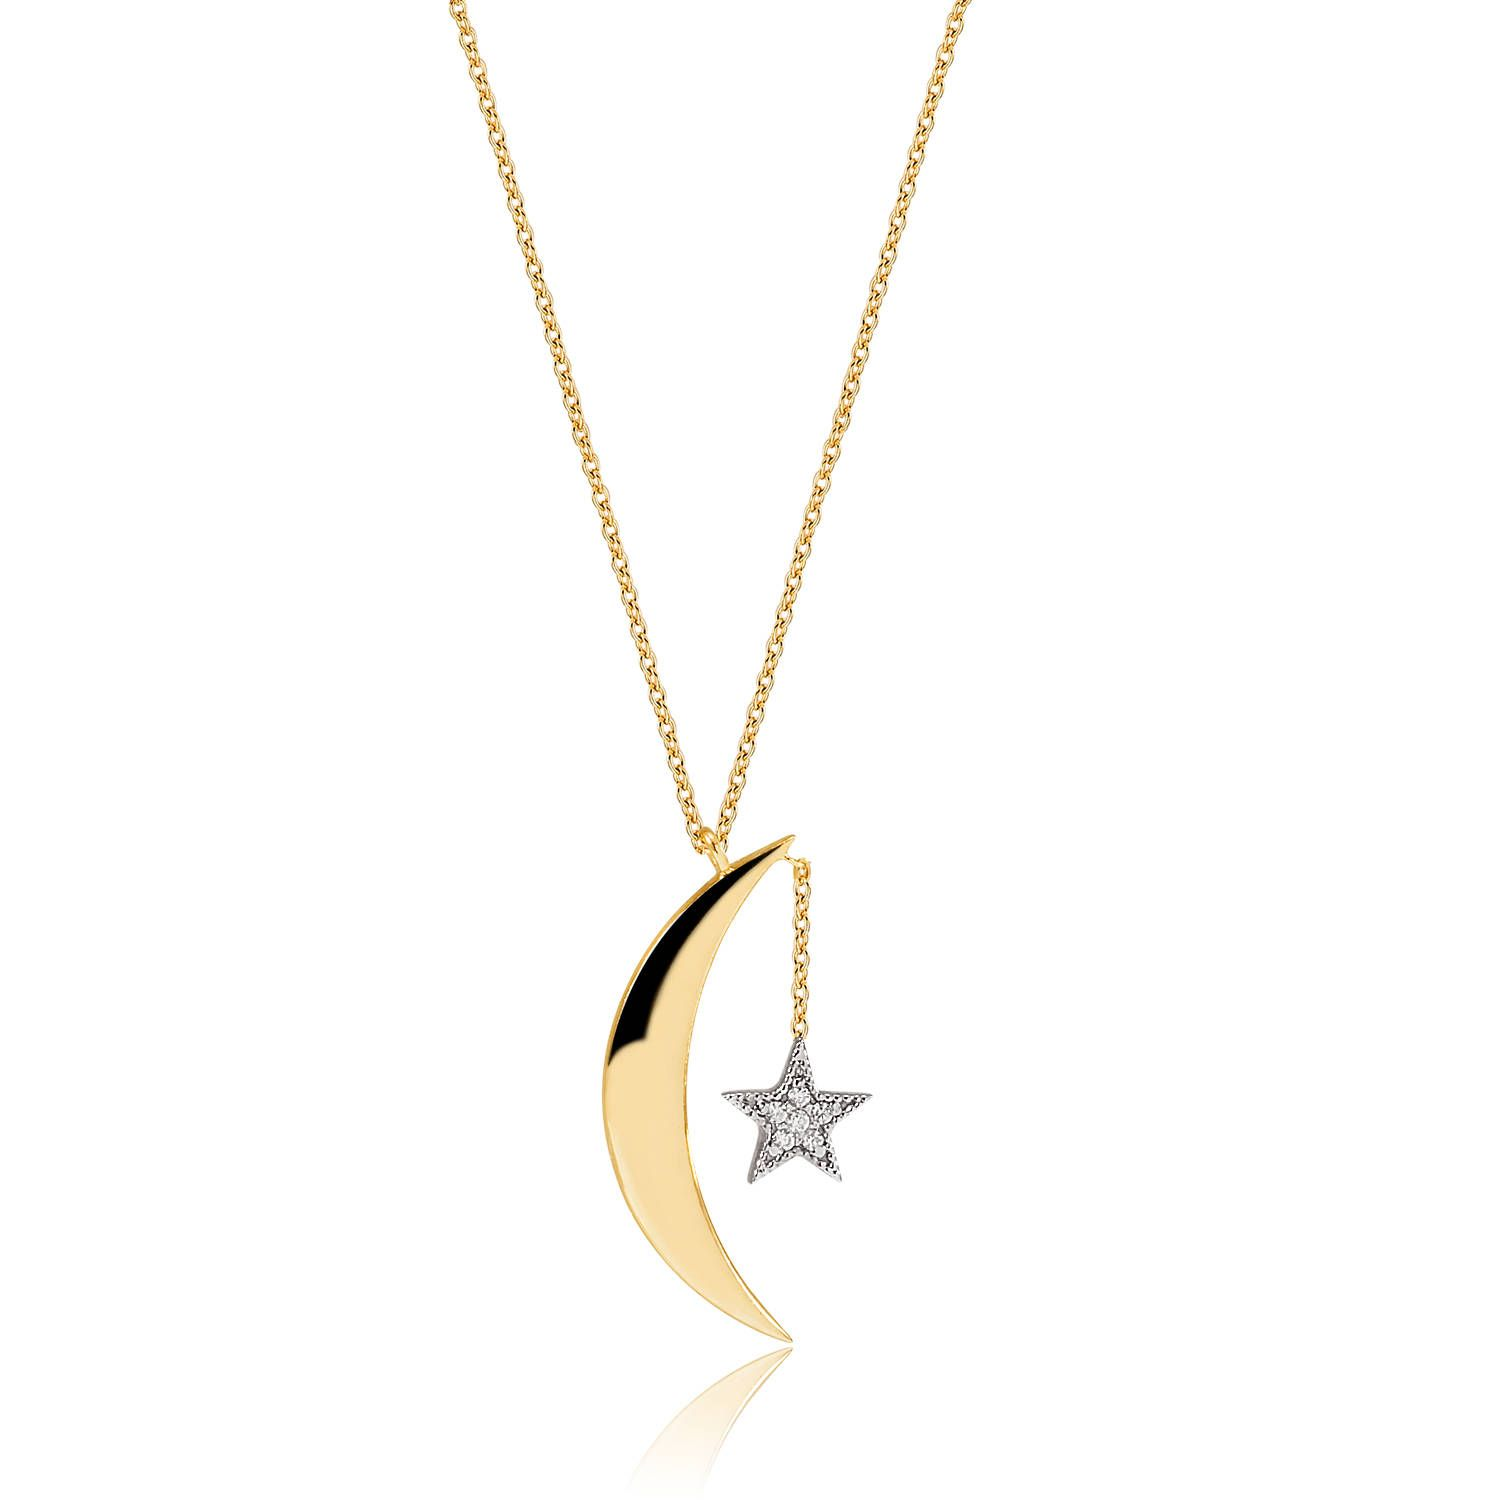 14k 18k Gold Gold Moon And Star Diamond Necklace Crescent Etsy Diamond Star Necklace Gold Moon Star Pendant Necklace